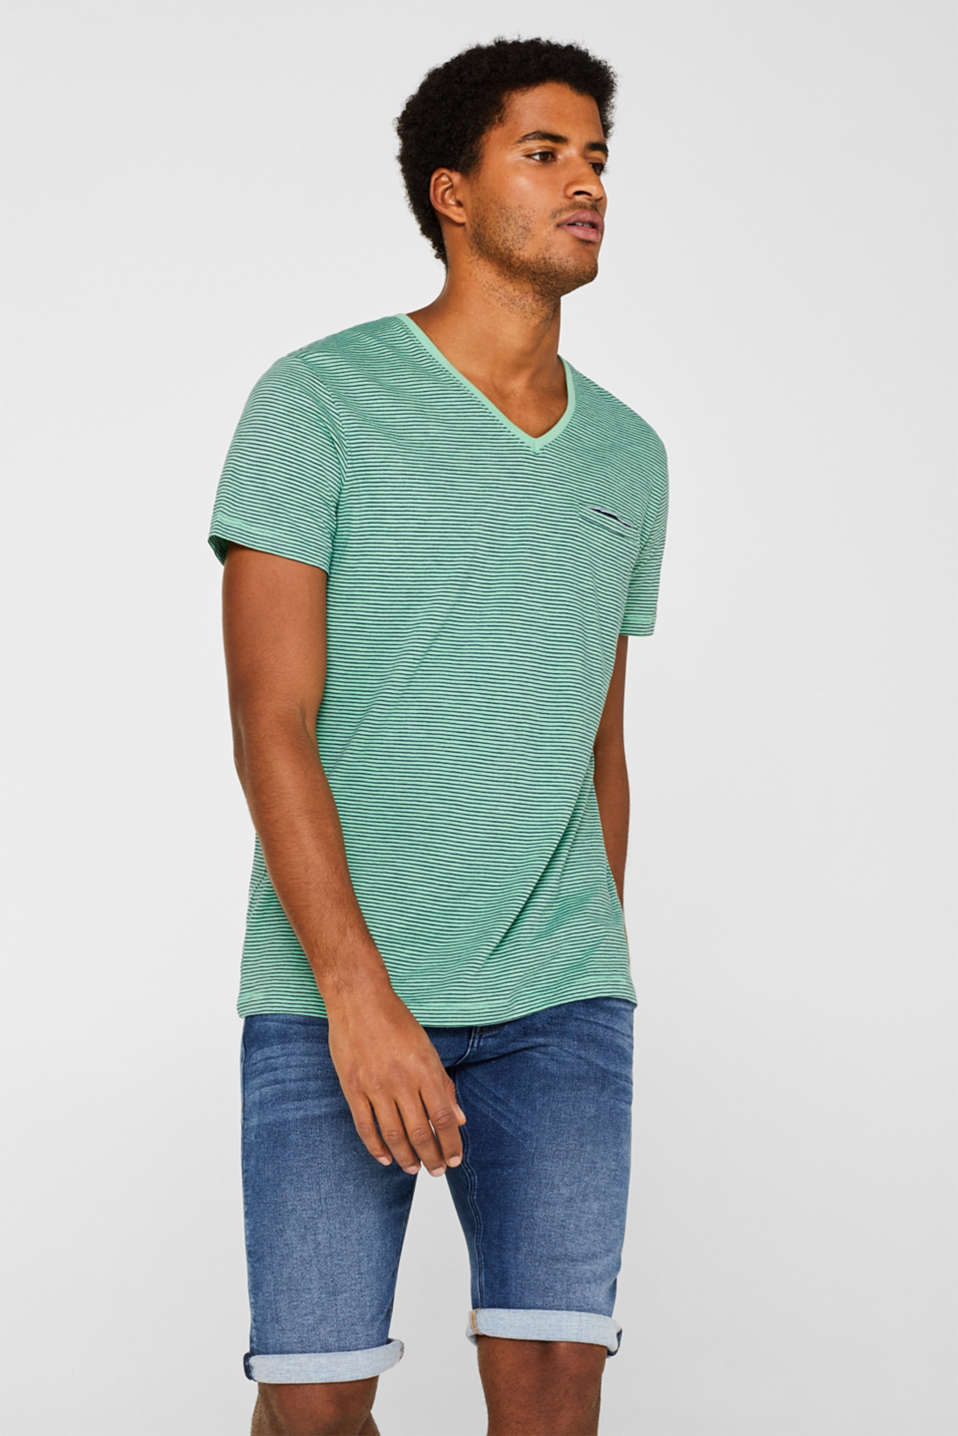 Esprit - Striped jersey T-shirt in 100% cotton